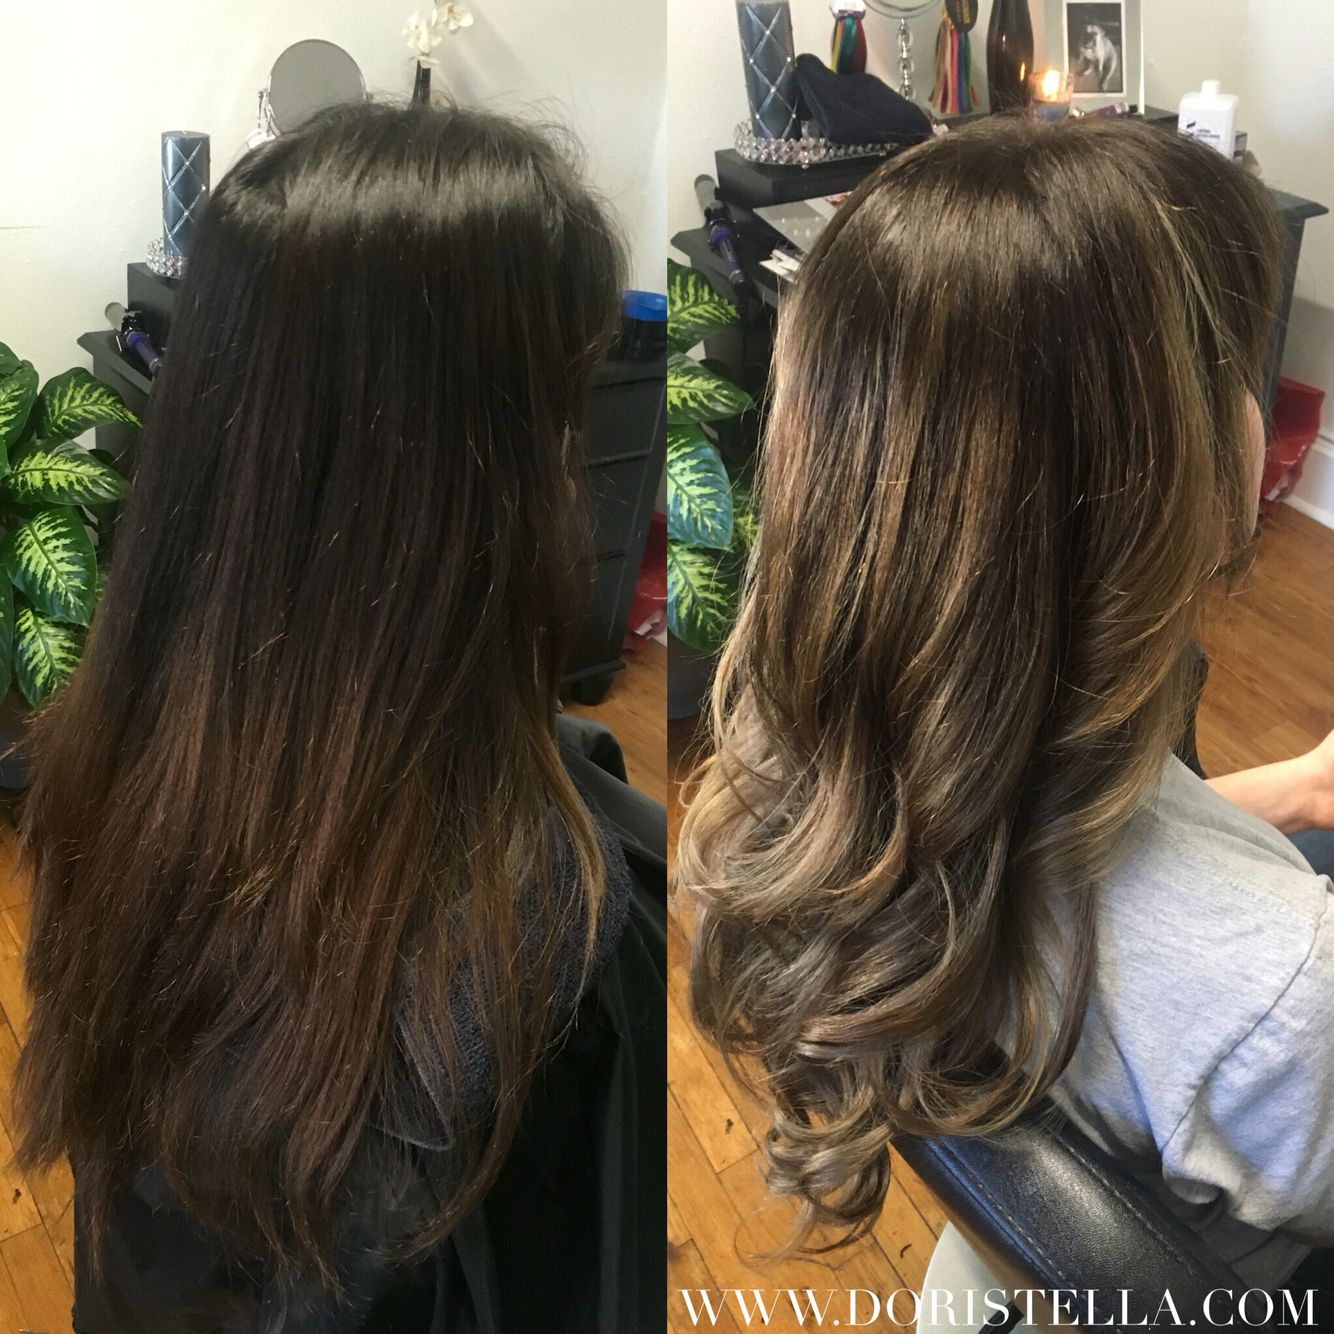 Before After Dark Beige Blonde Highlights Balayage Brunette Long Layers And Curls Www Doristella Com Balayage Brunette Hair Styles Blonde Highlights